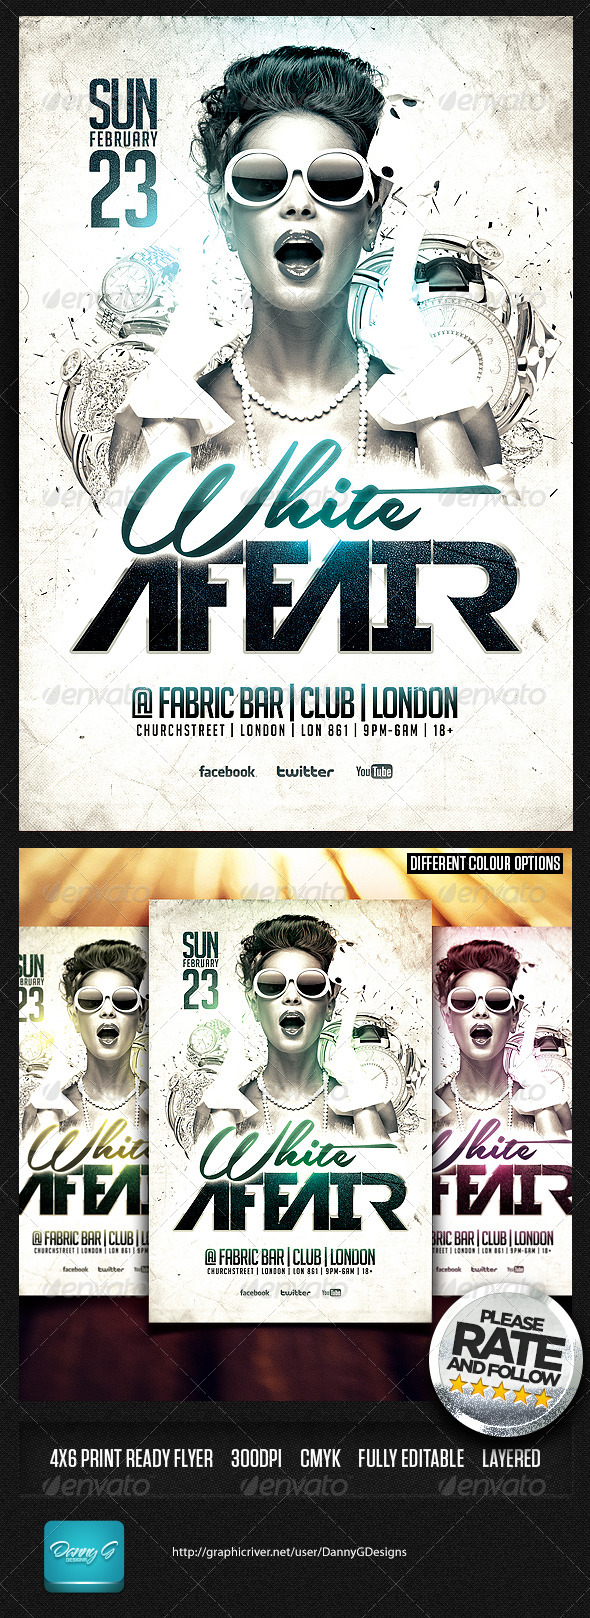 White Affair Flyer Template PSD - Clubs & Parties Events